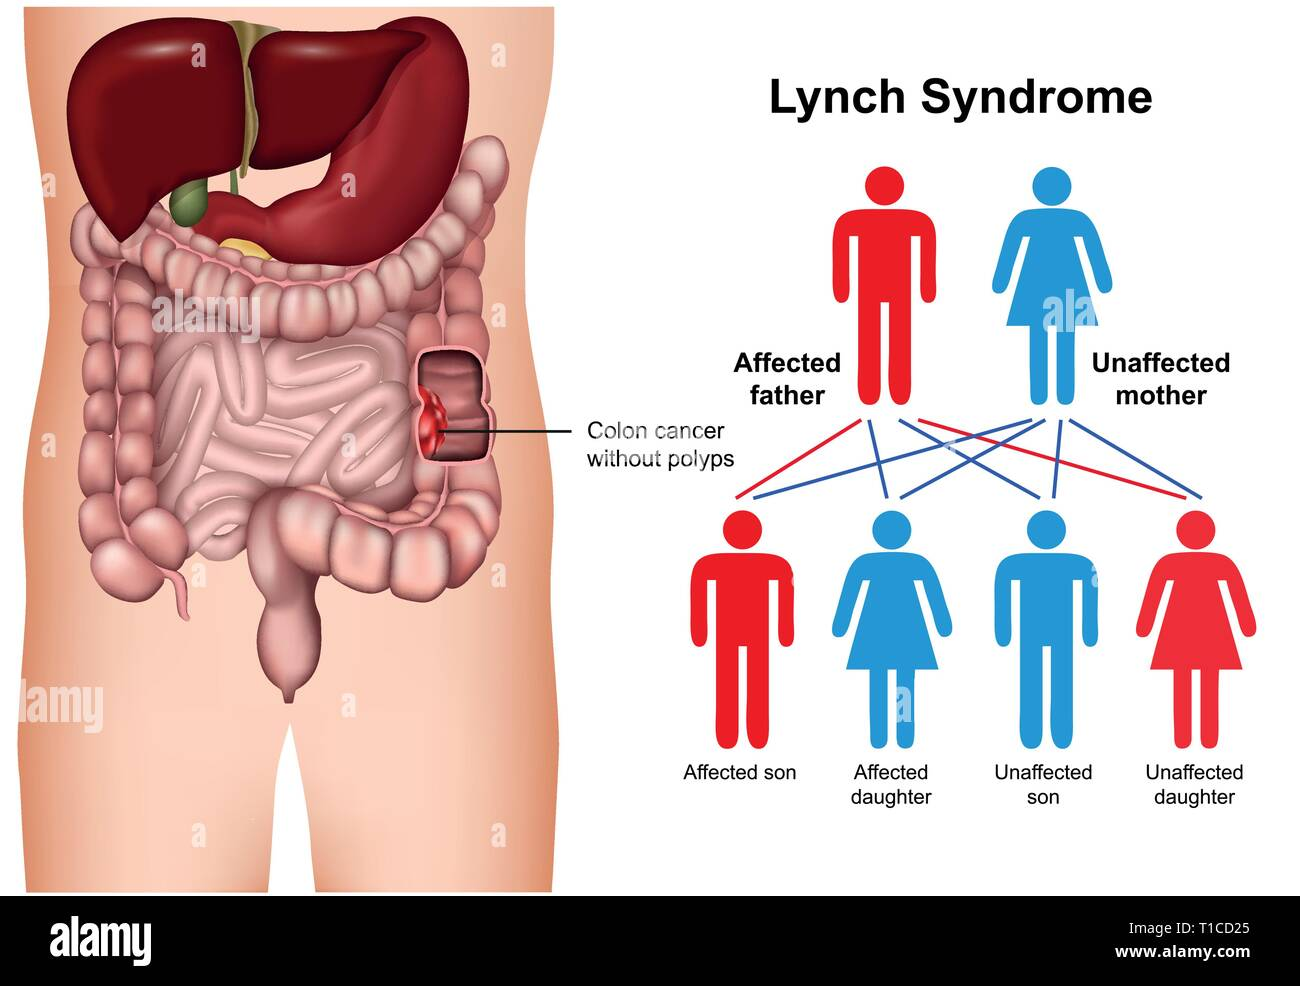 Lynch syndrome disease 3d medical vector illustration on white background Stock Vector